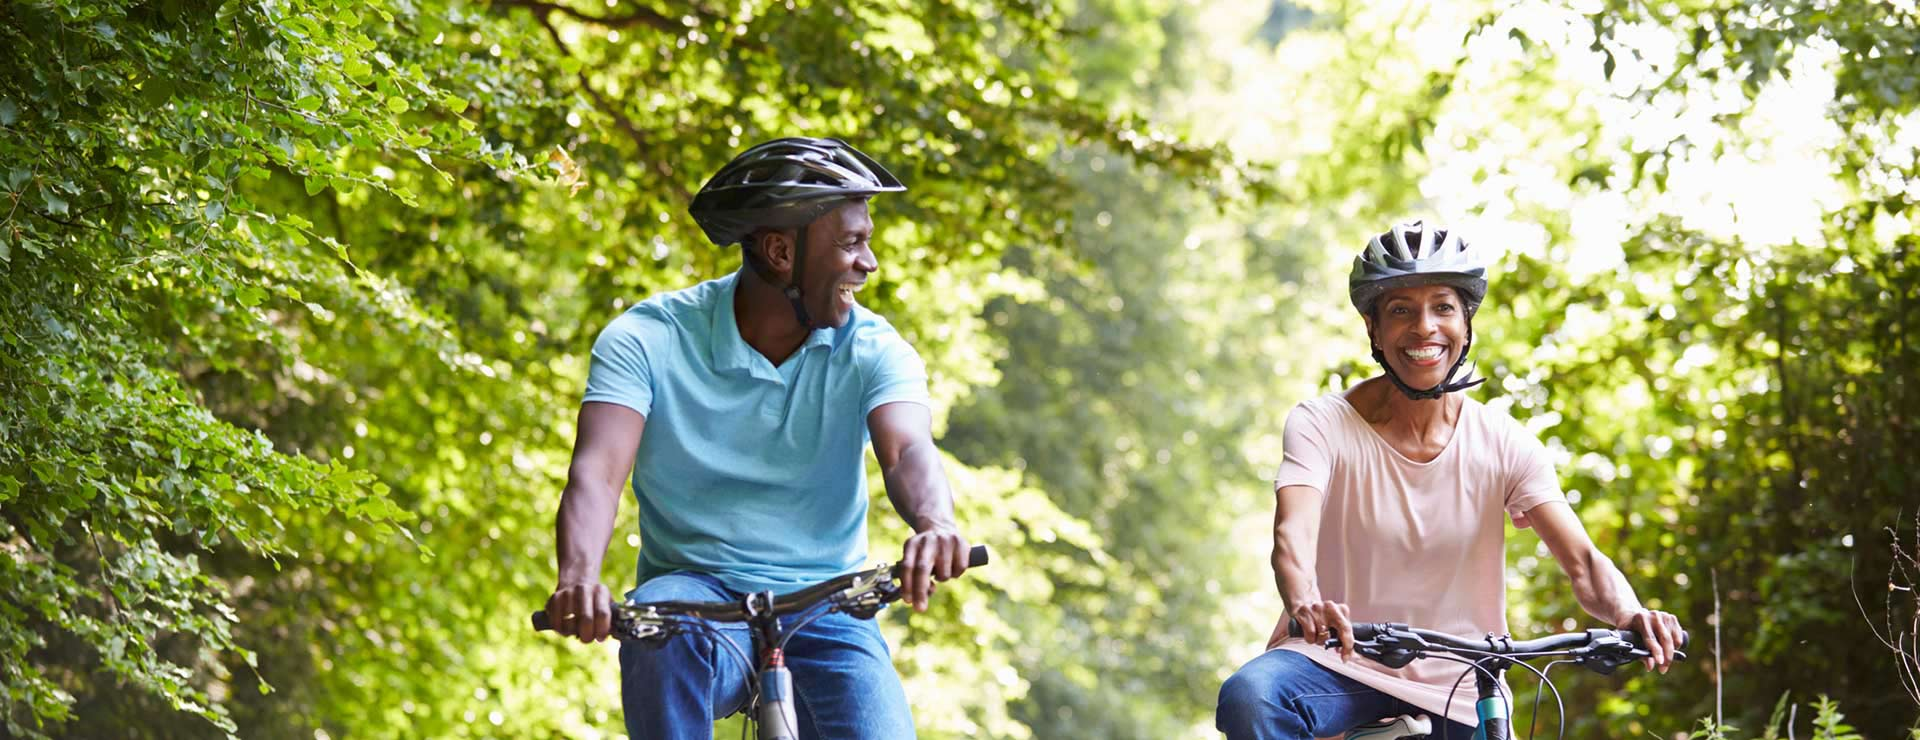 Couple riding bikes together on a wooded path.